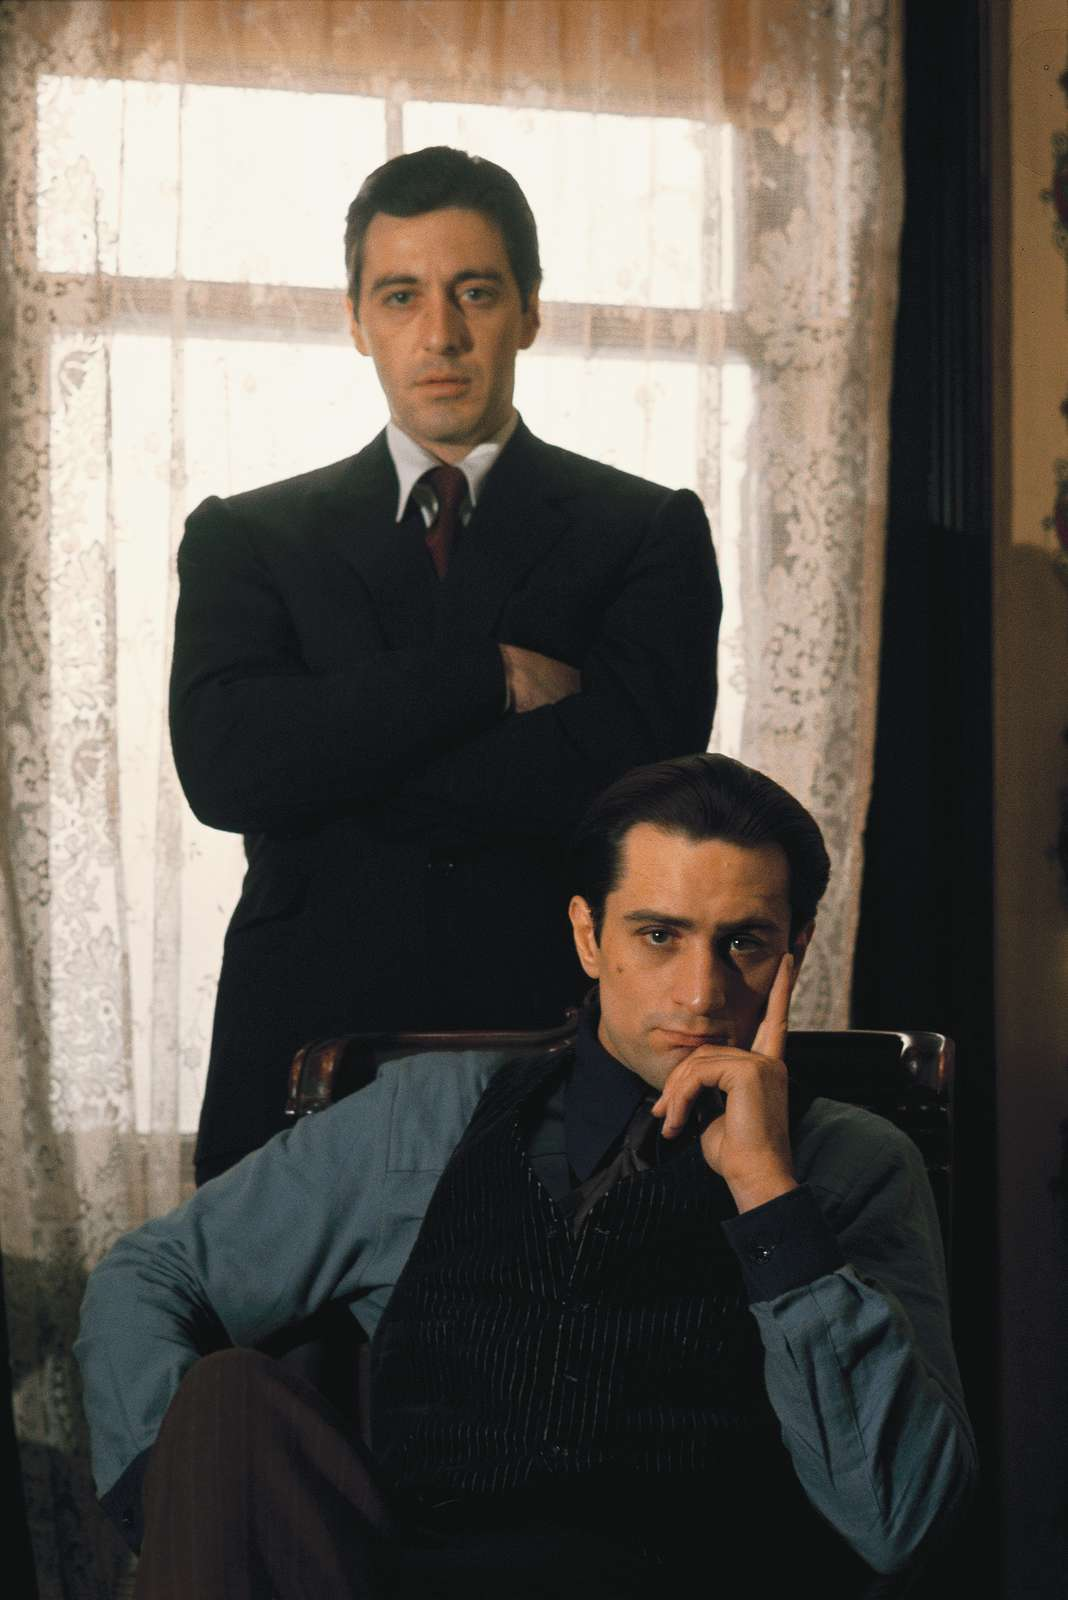 Pacino and DeNiro, Godfather II, 1973